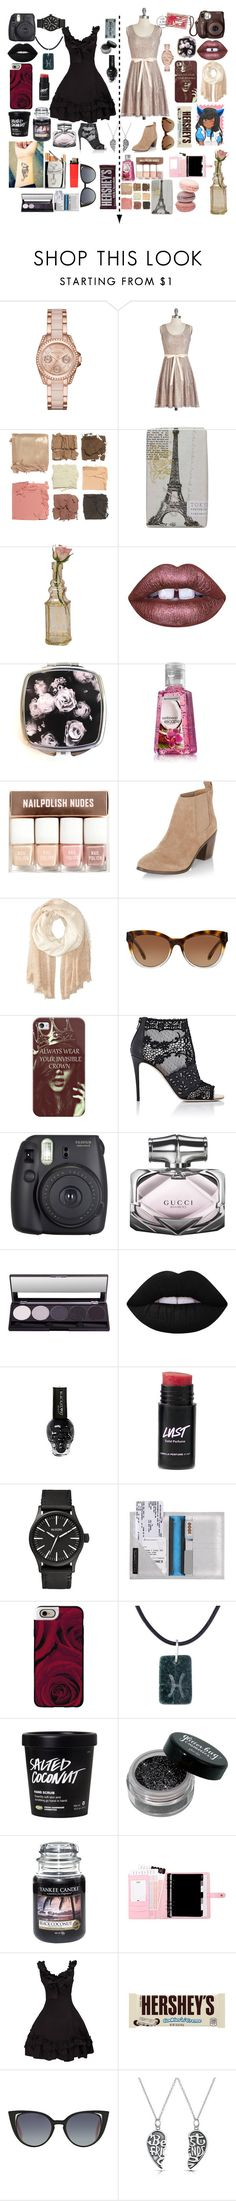 """Me And My Best Friend. xx"" by cory-price ❤ liked on Polyvore featuring MICHAEL Michael Kors, Illamasqua, TokyoMilk, Cultural Intrigue, Lime Crime, H&M, New Look, Calvin Klein, Michael Kors and Hershey's"